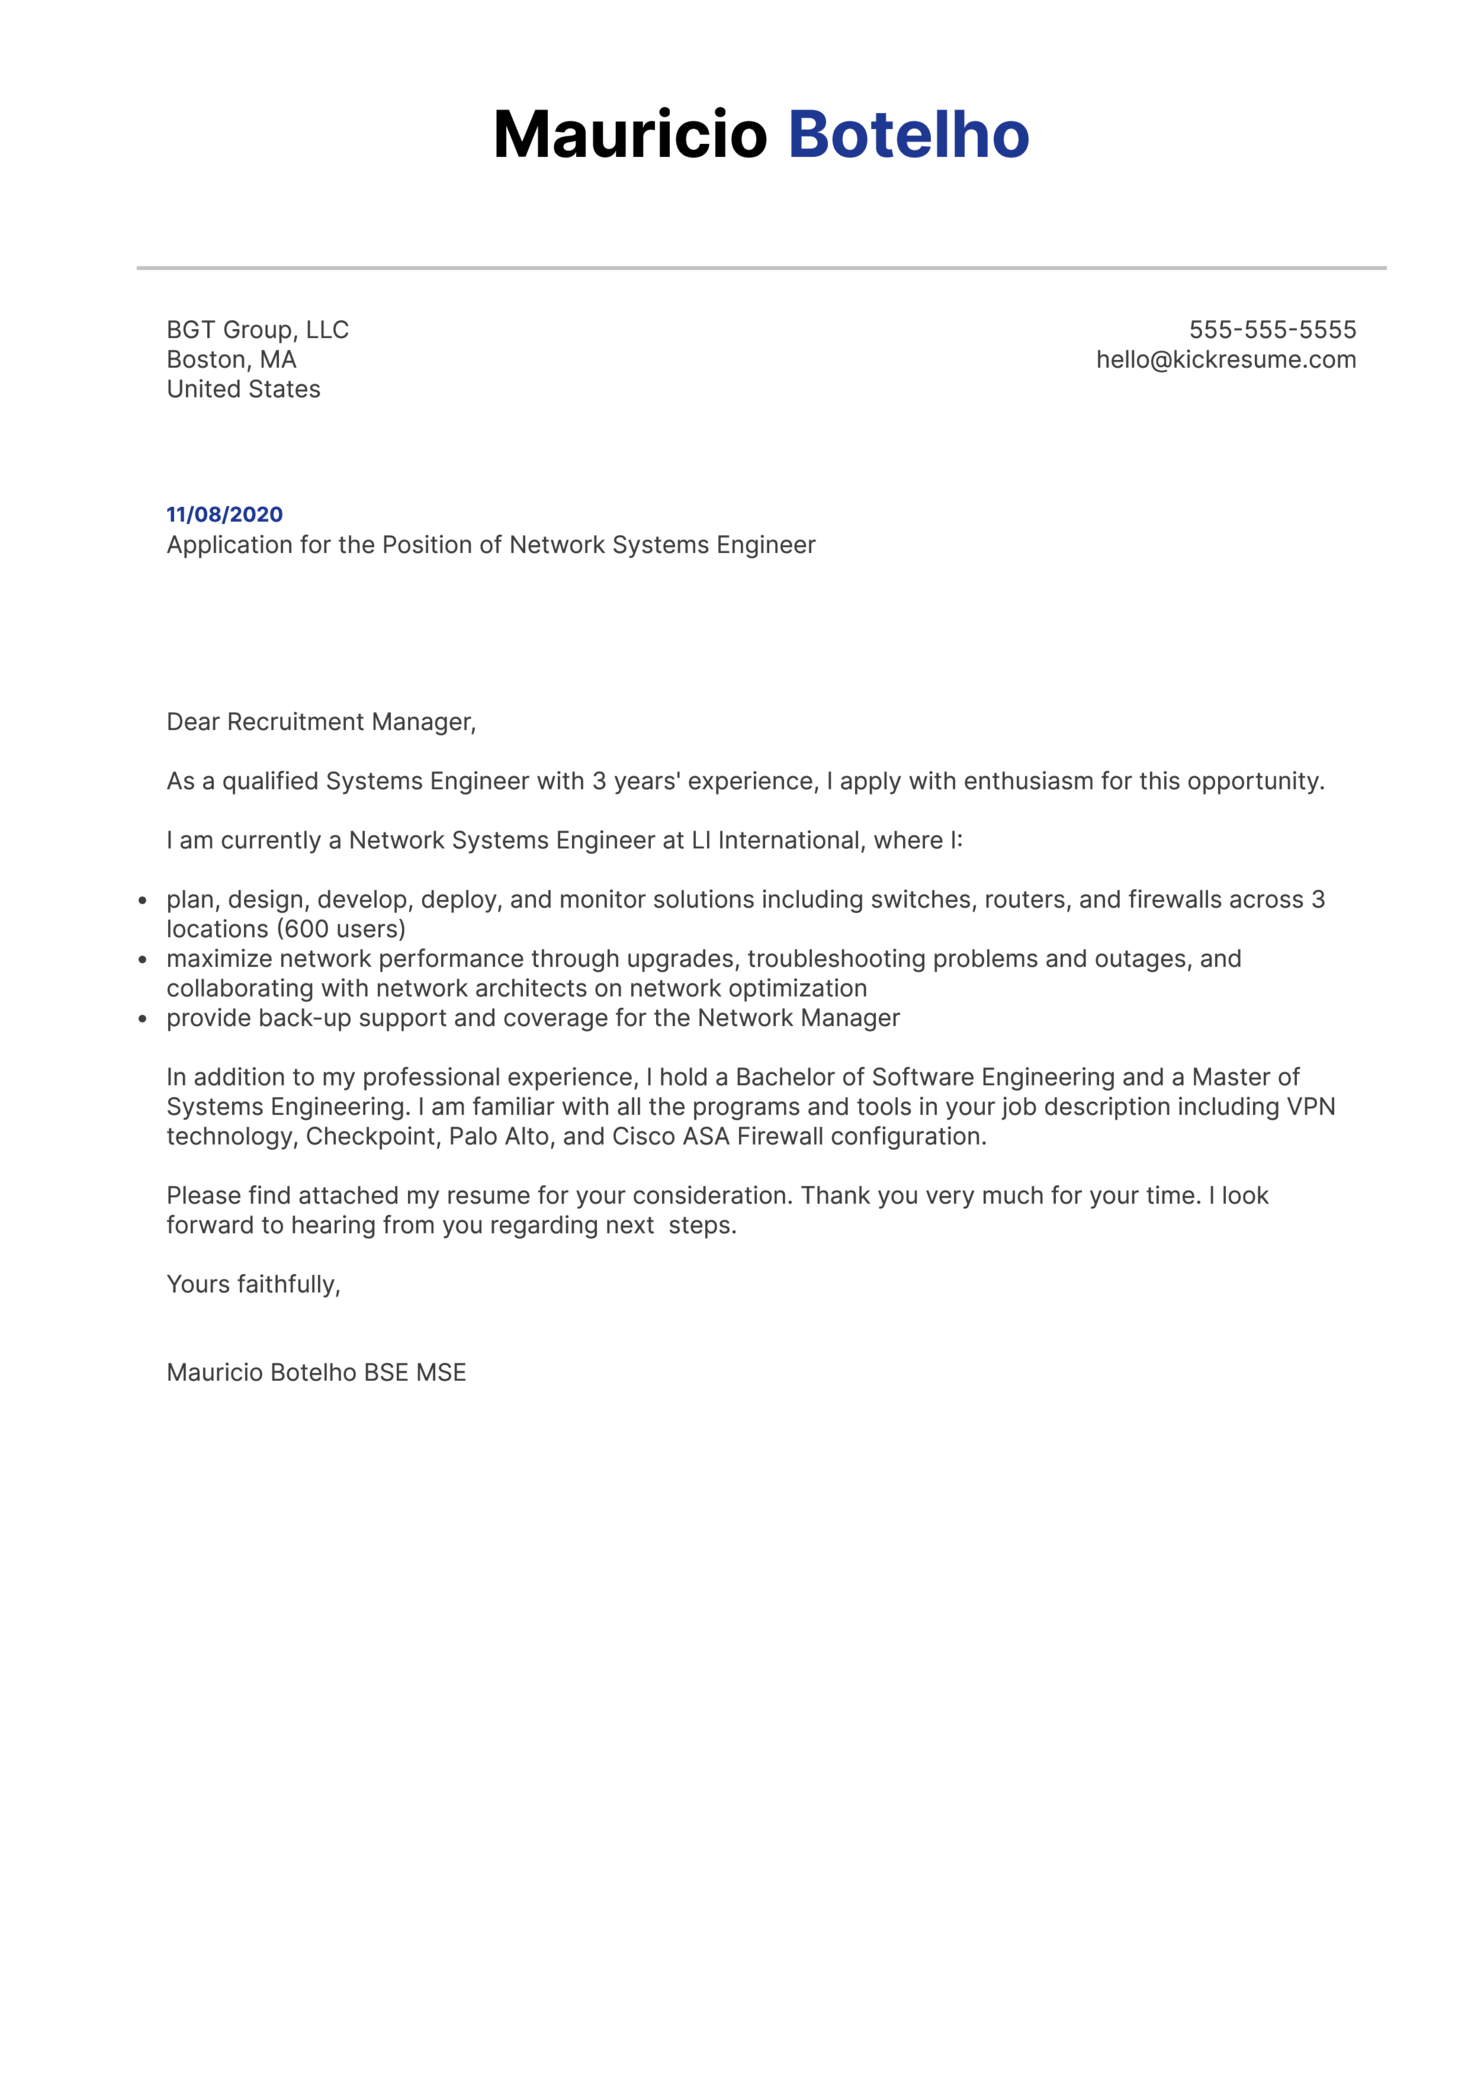 Network Systems Engineer Cover Letter Sample